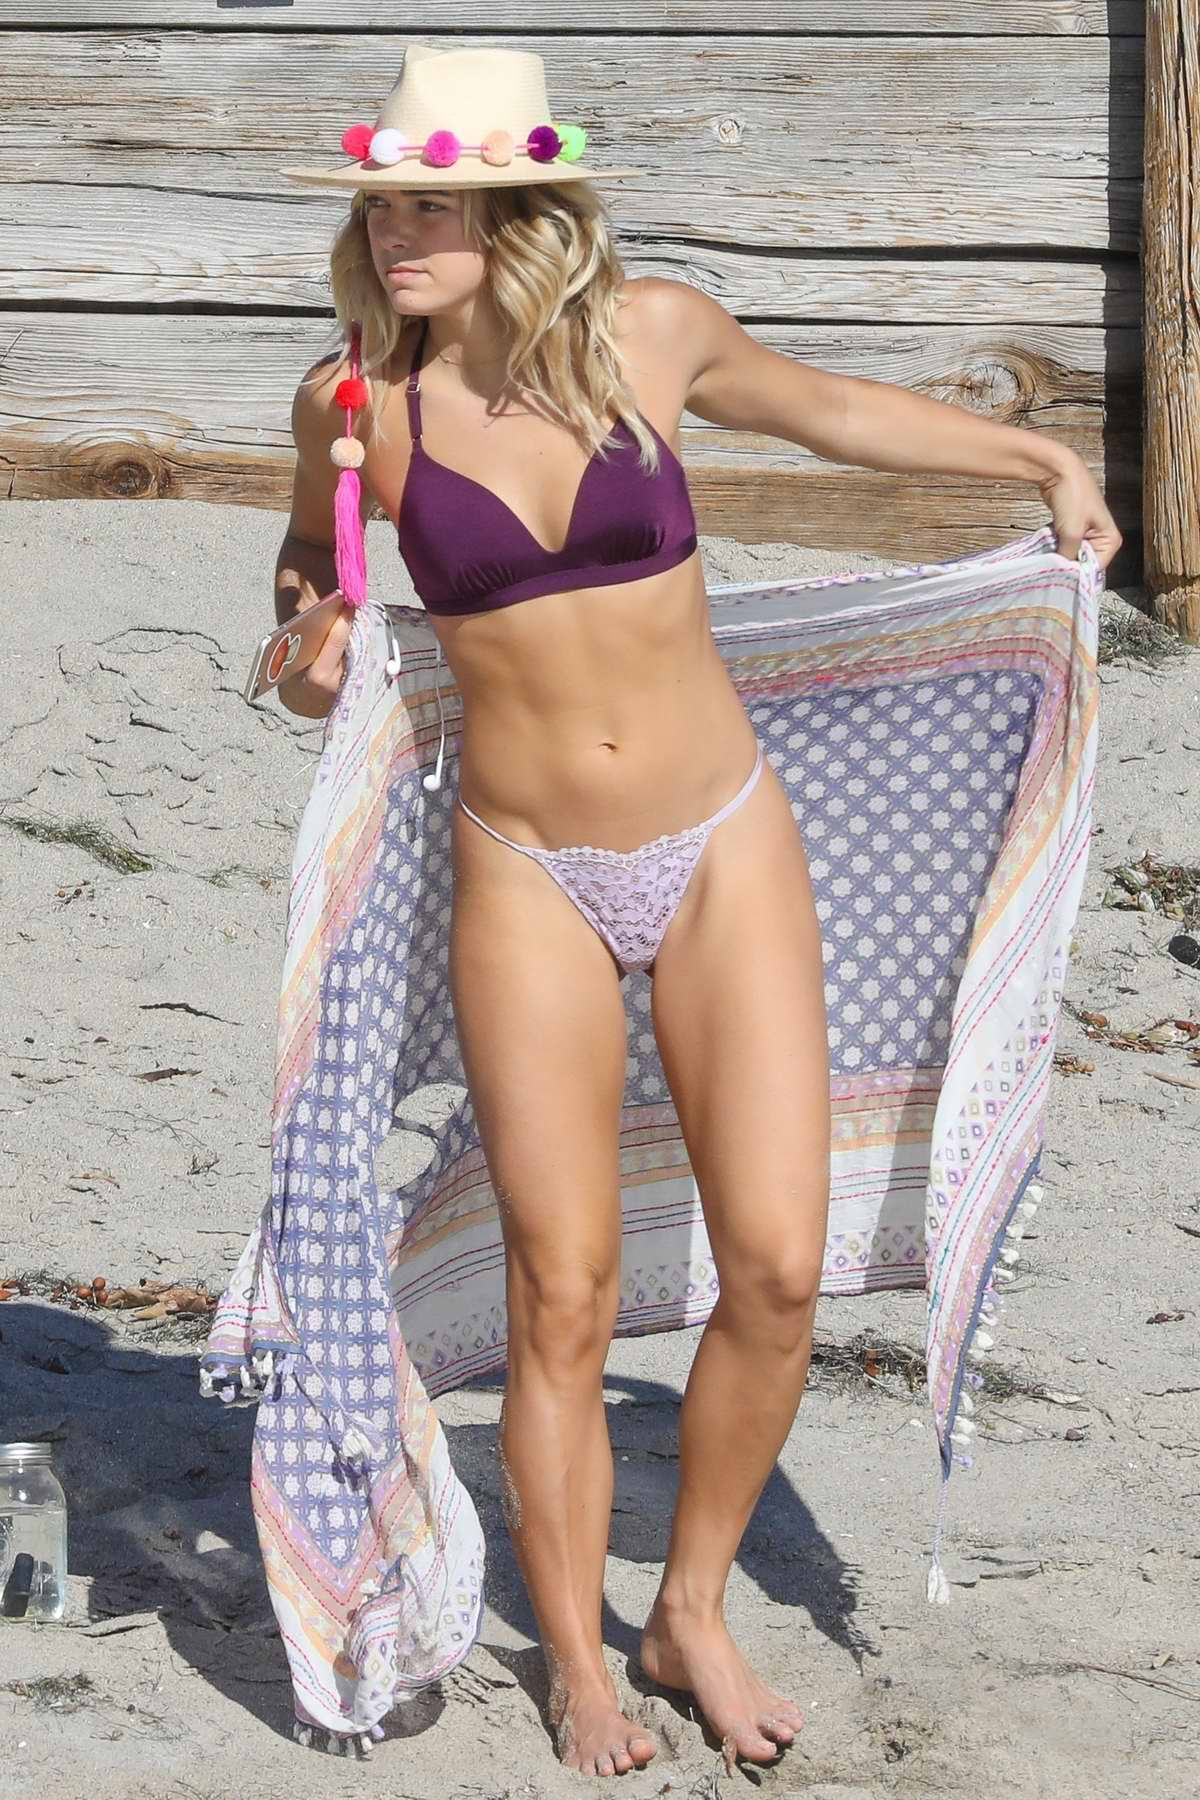 Ashley Hart in a bikini on set of a photoshoot for Athleta on the beach in Malibu, California